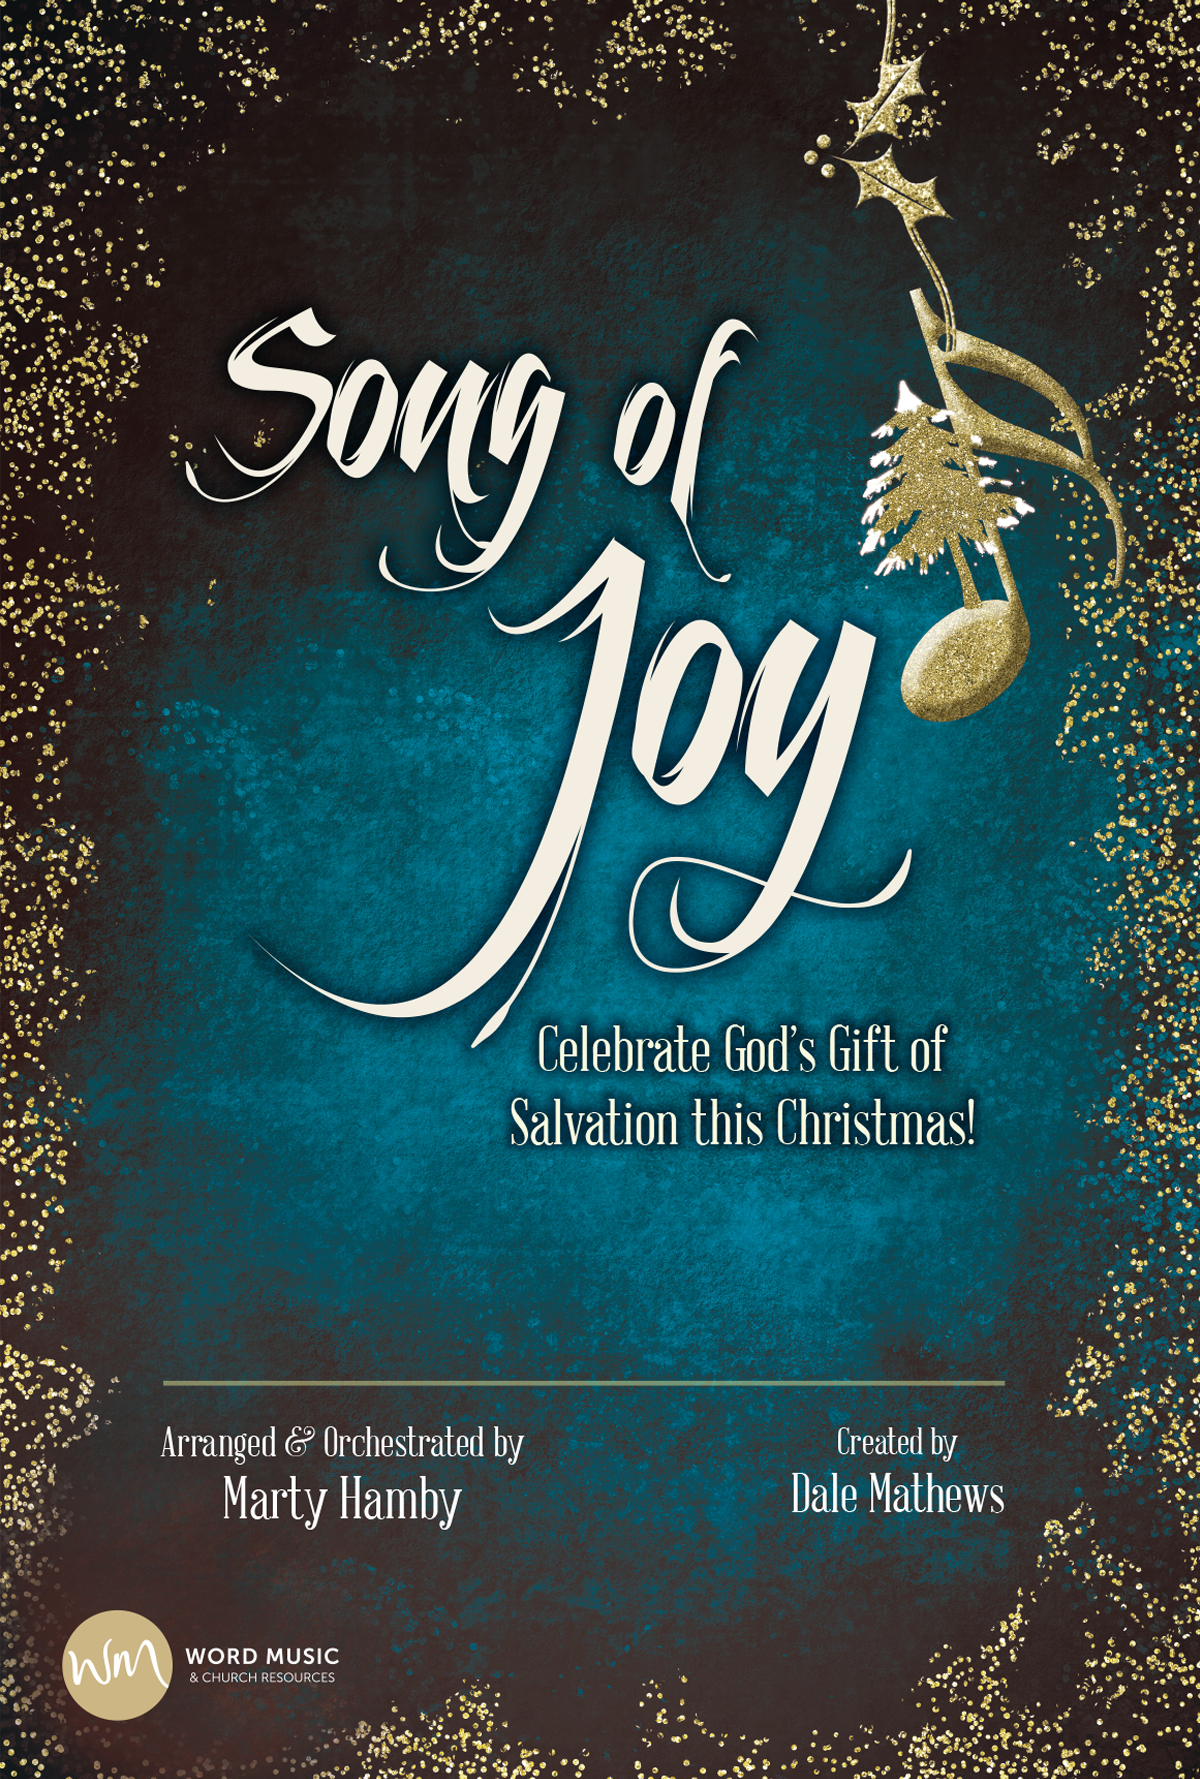 joy song christmas music musical worship choral adult jesus church word songs club sing hits wow praise dale wordchoralclub